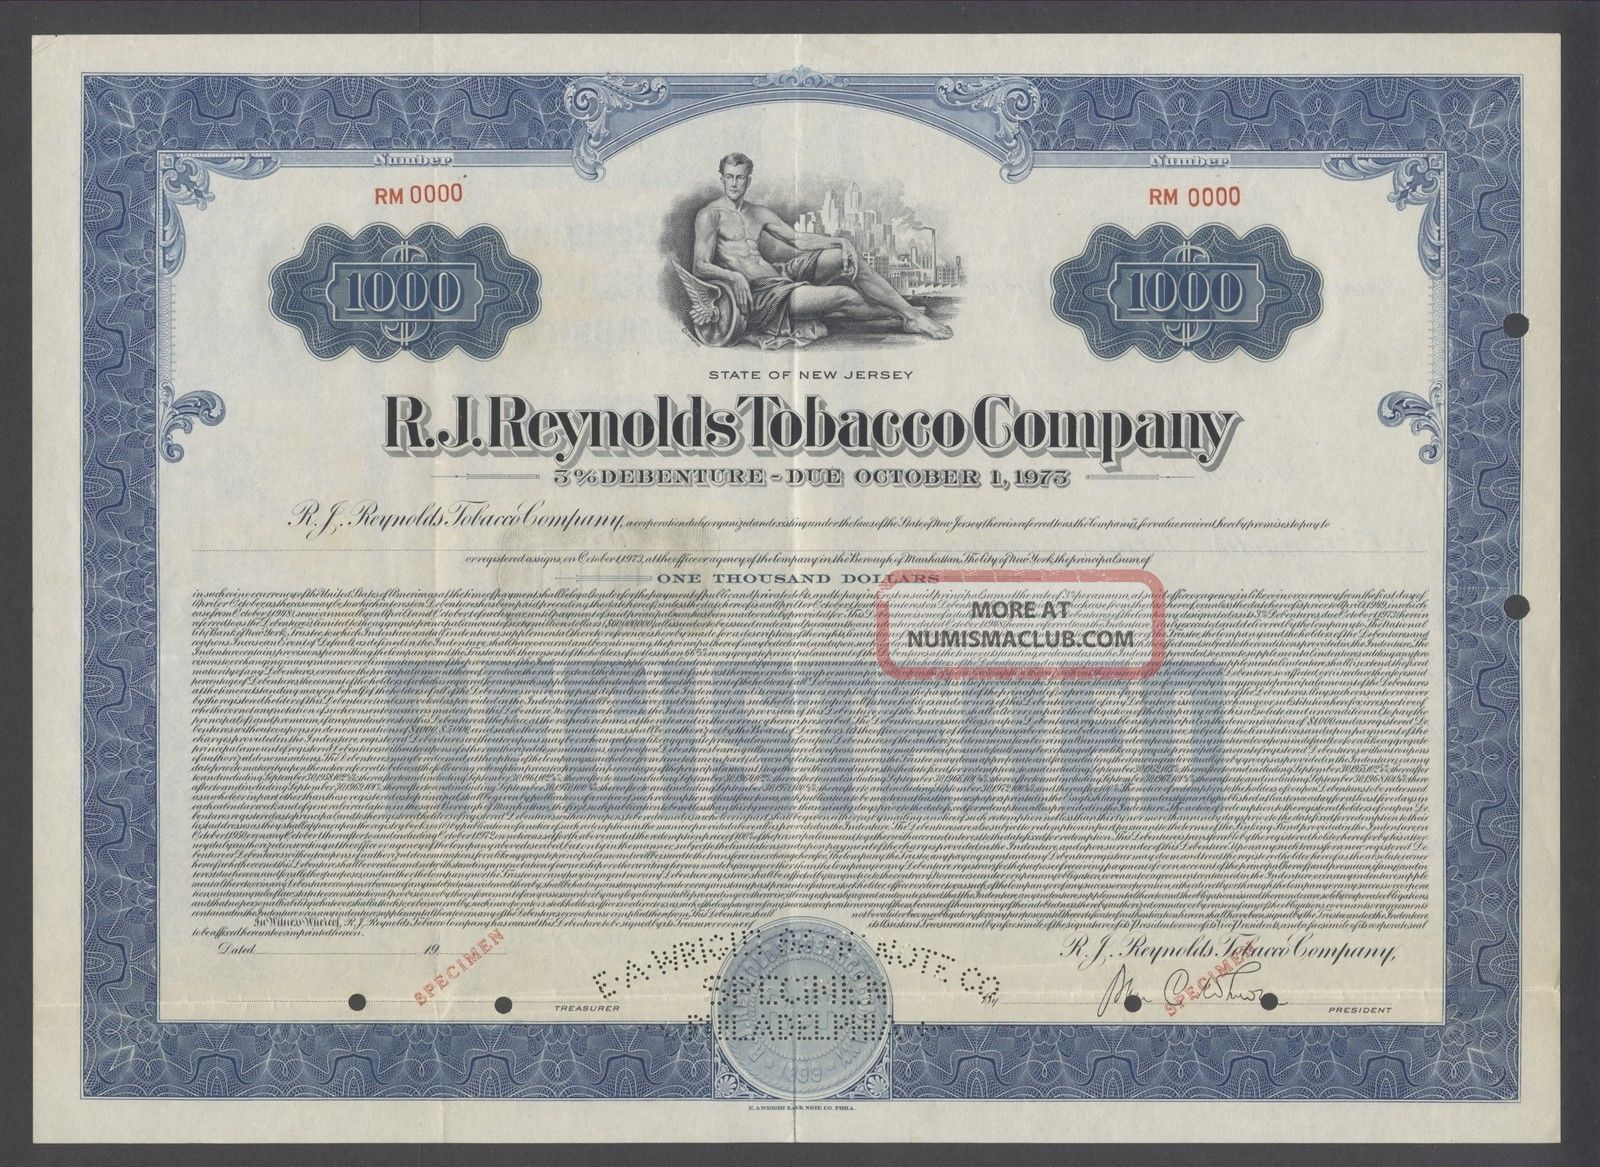 United States 1973 Bond Specimen - R.  J Reynolds Tobacco Company. .  B1581 World photo